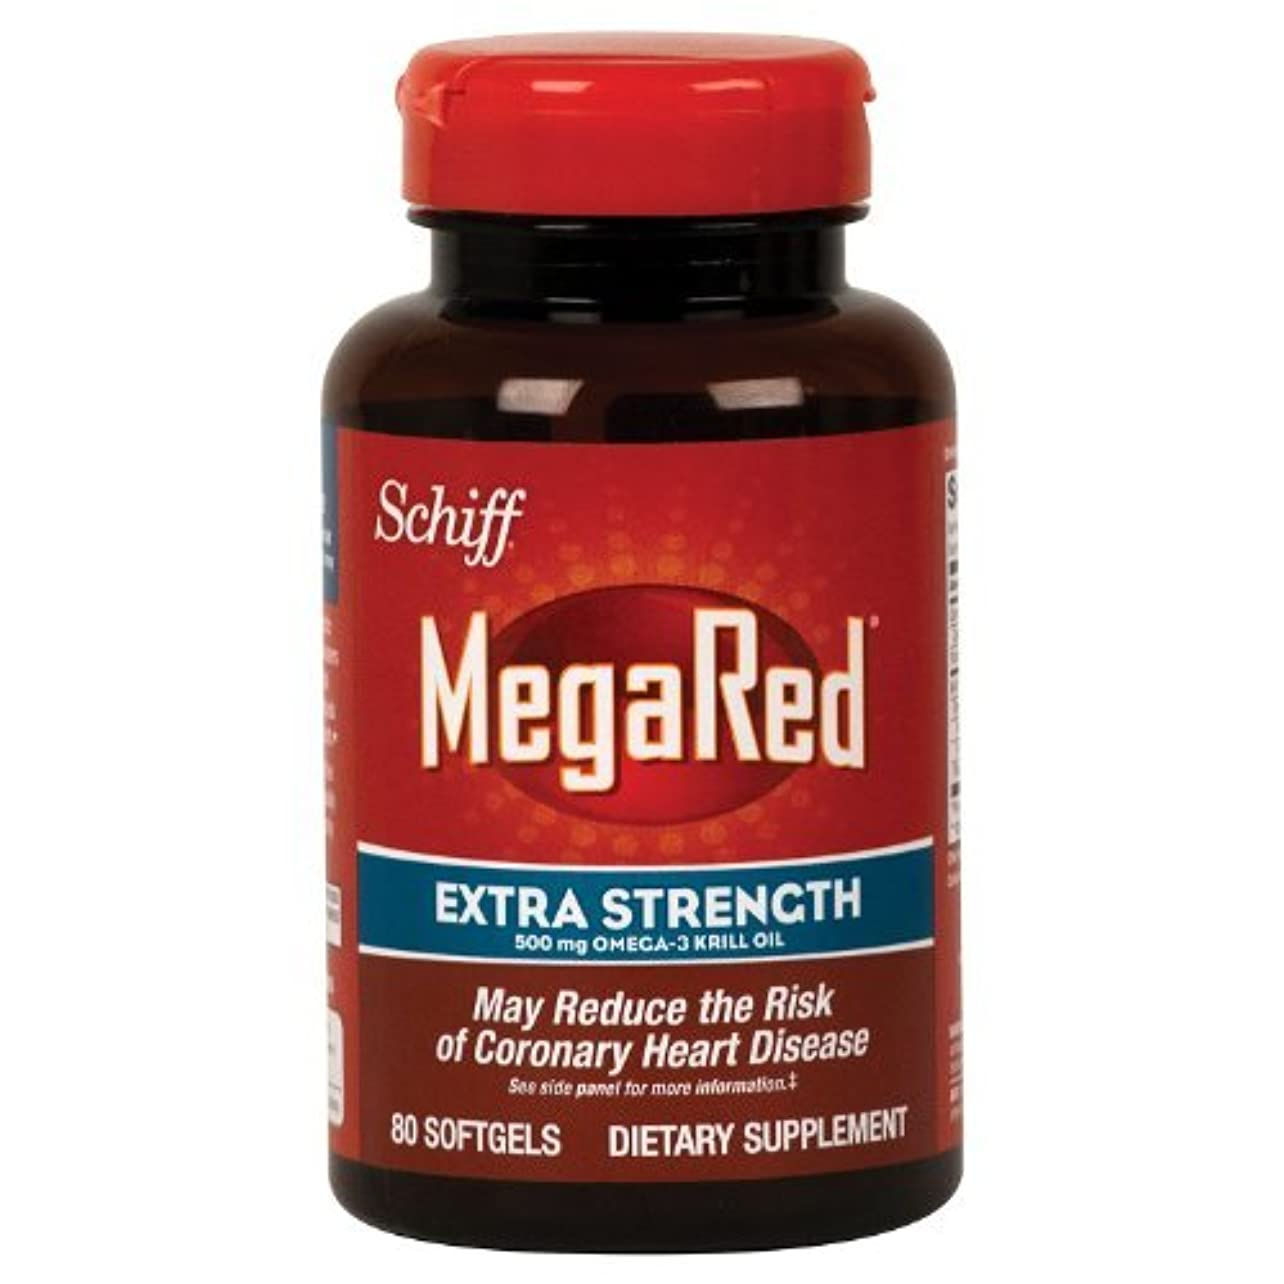 褒賞外部ほこりっぽいSchiff Megared Extra Strength 500mg Omega-3 Krill Oil - 80 Softgels by Simply Right [並行輸入品]